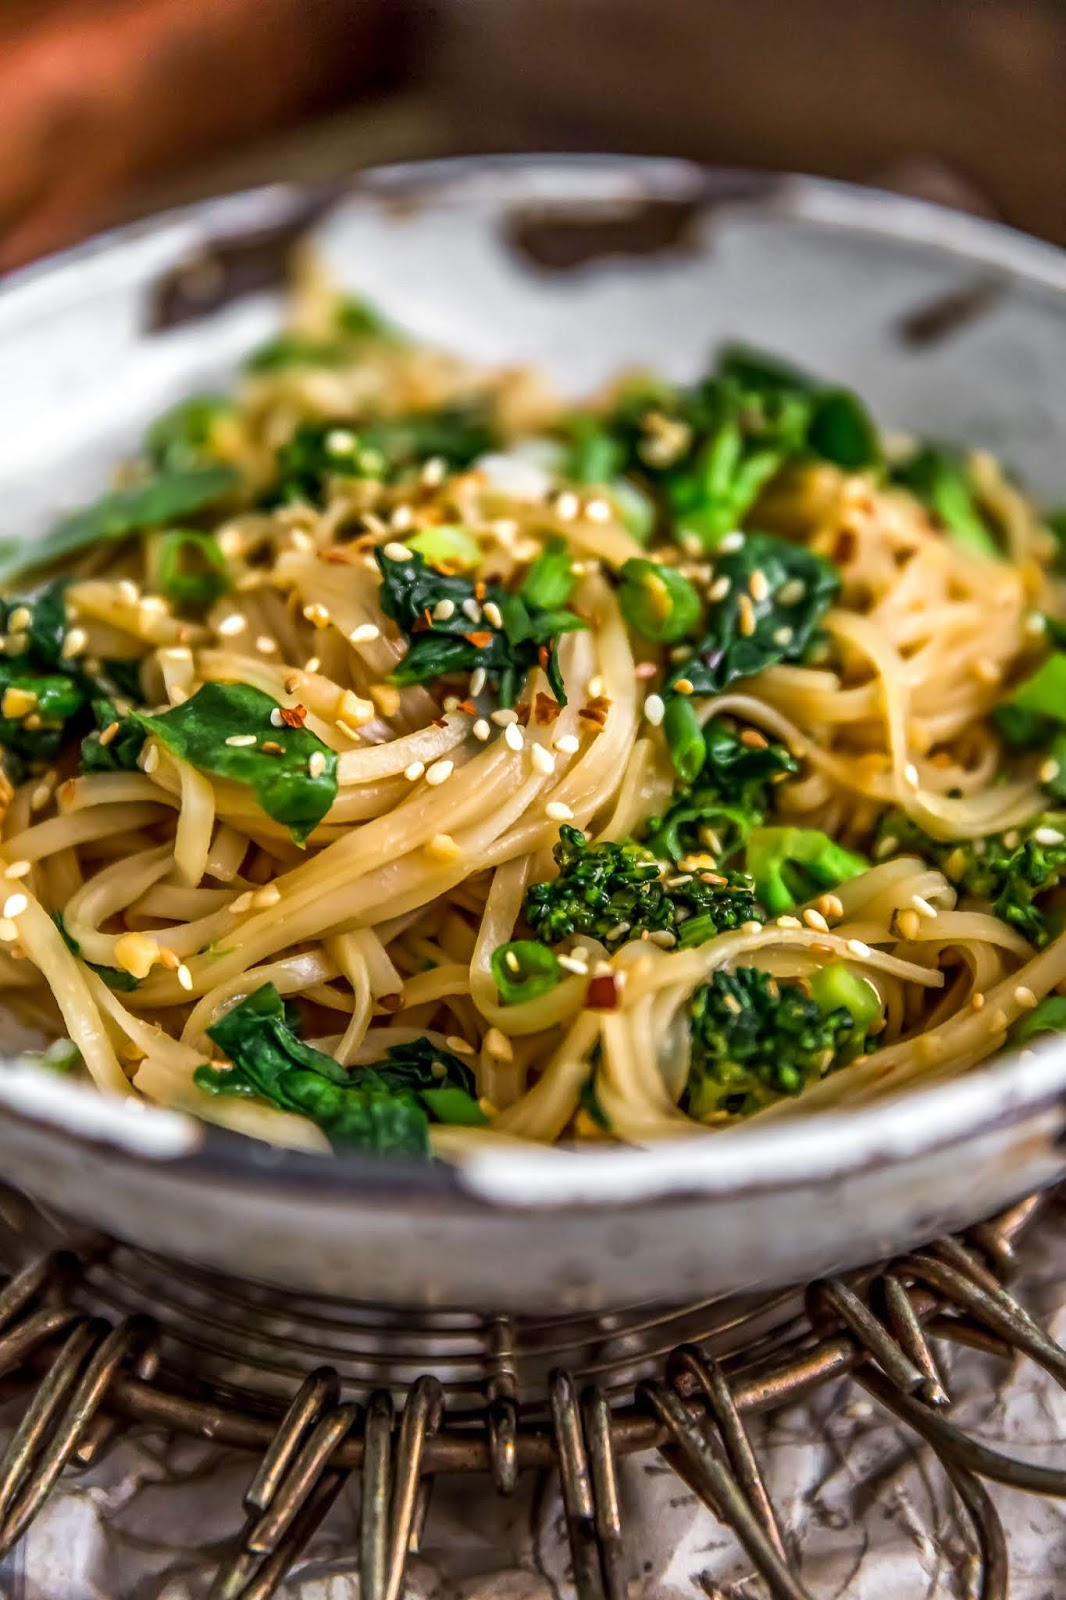 Oil-Free Garlic Sticky Noodles. Need more recipes? Find 20 Quick Vegan Lunch Recipes Perfect for Easy Meal Prep. healthy lunch vegan | vegetarian lunch ideas | vegan lunchbox | vegan easy lunch ideas #veganlunch #vegan #veganlunchideas #healthy